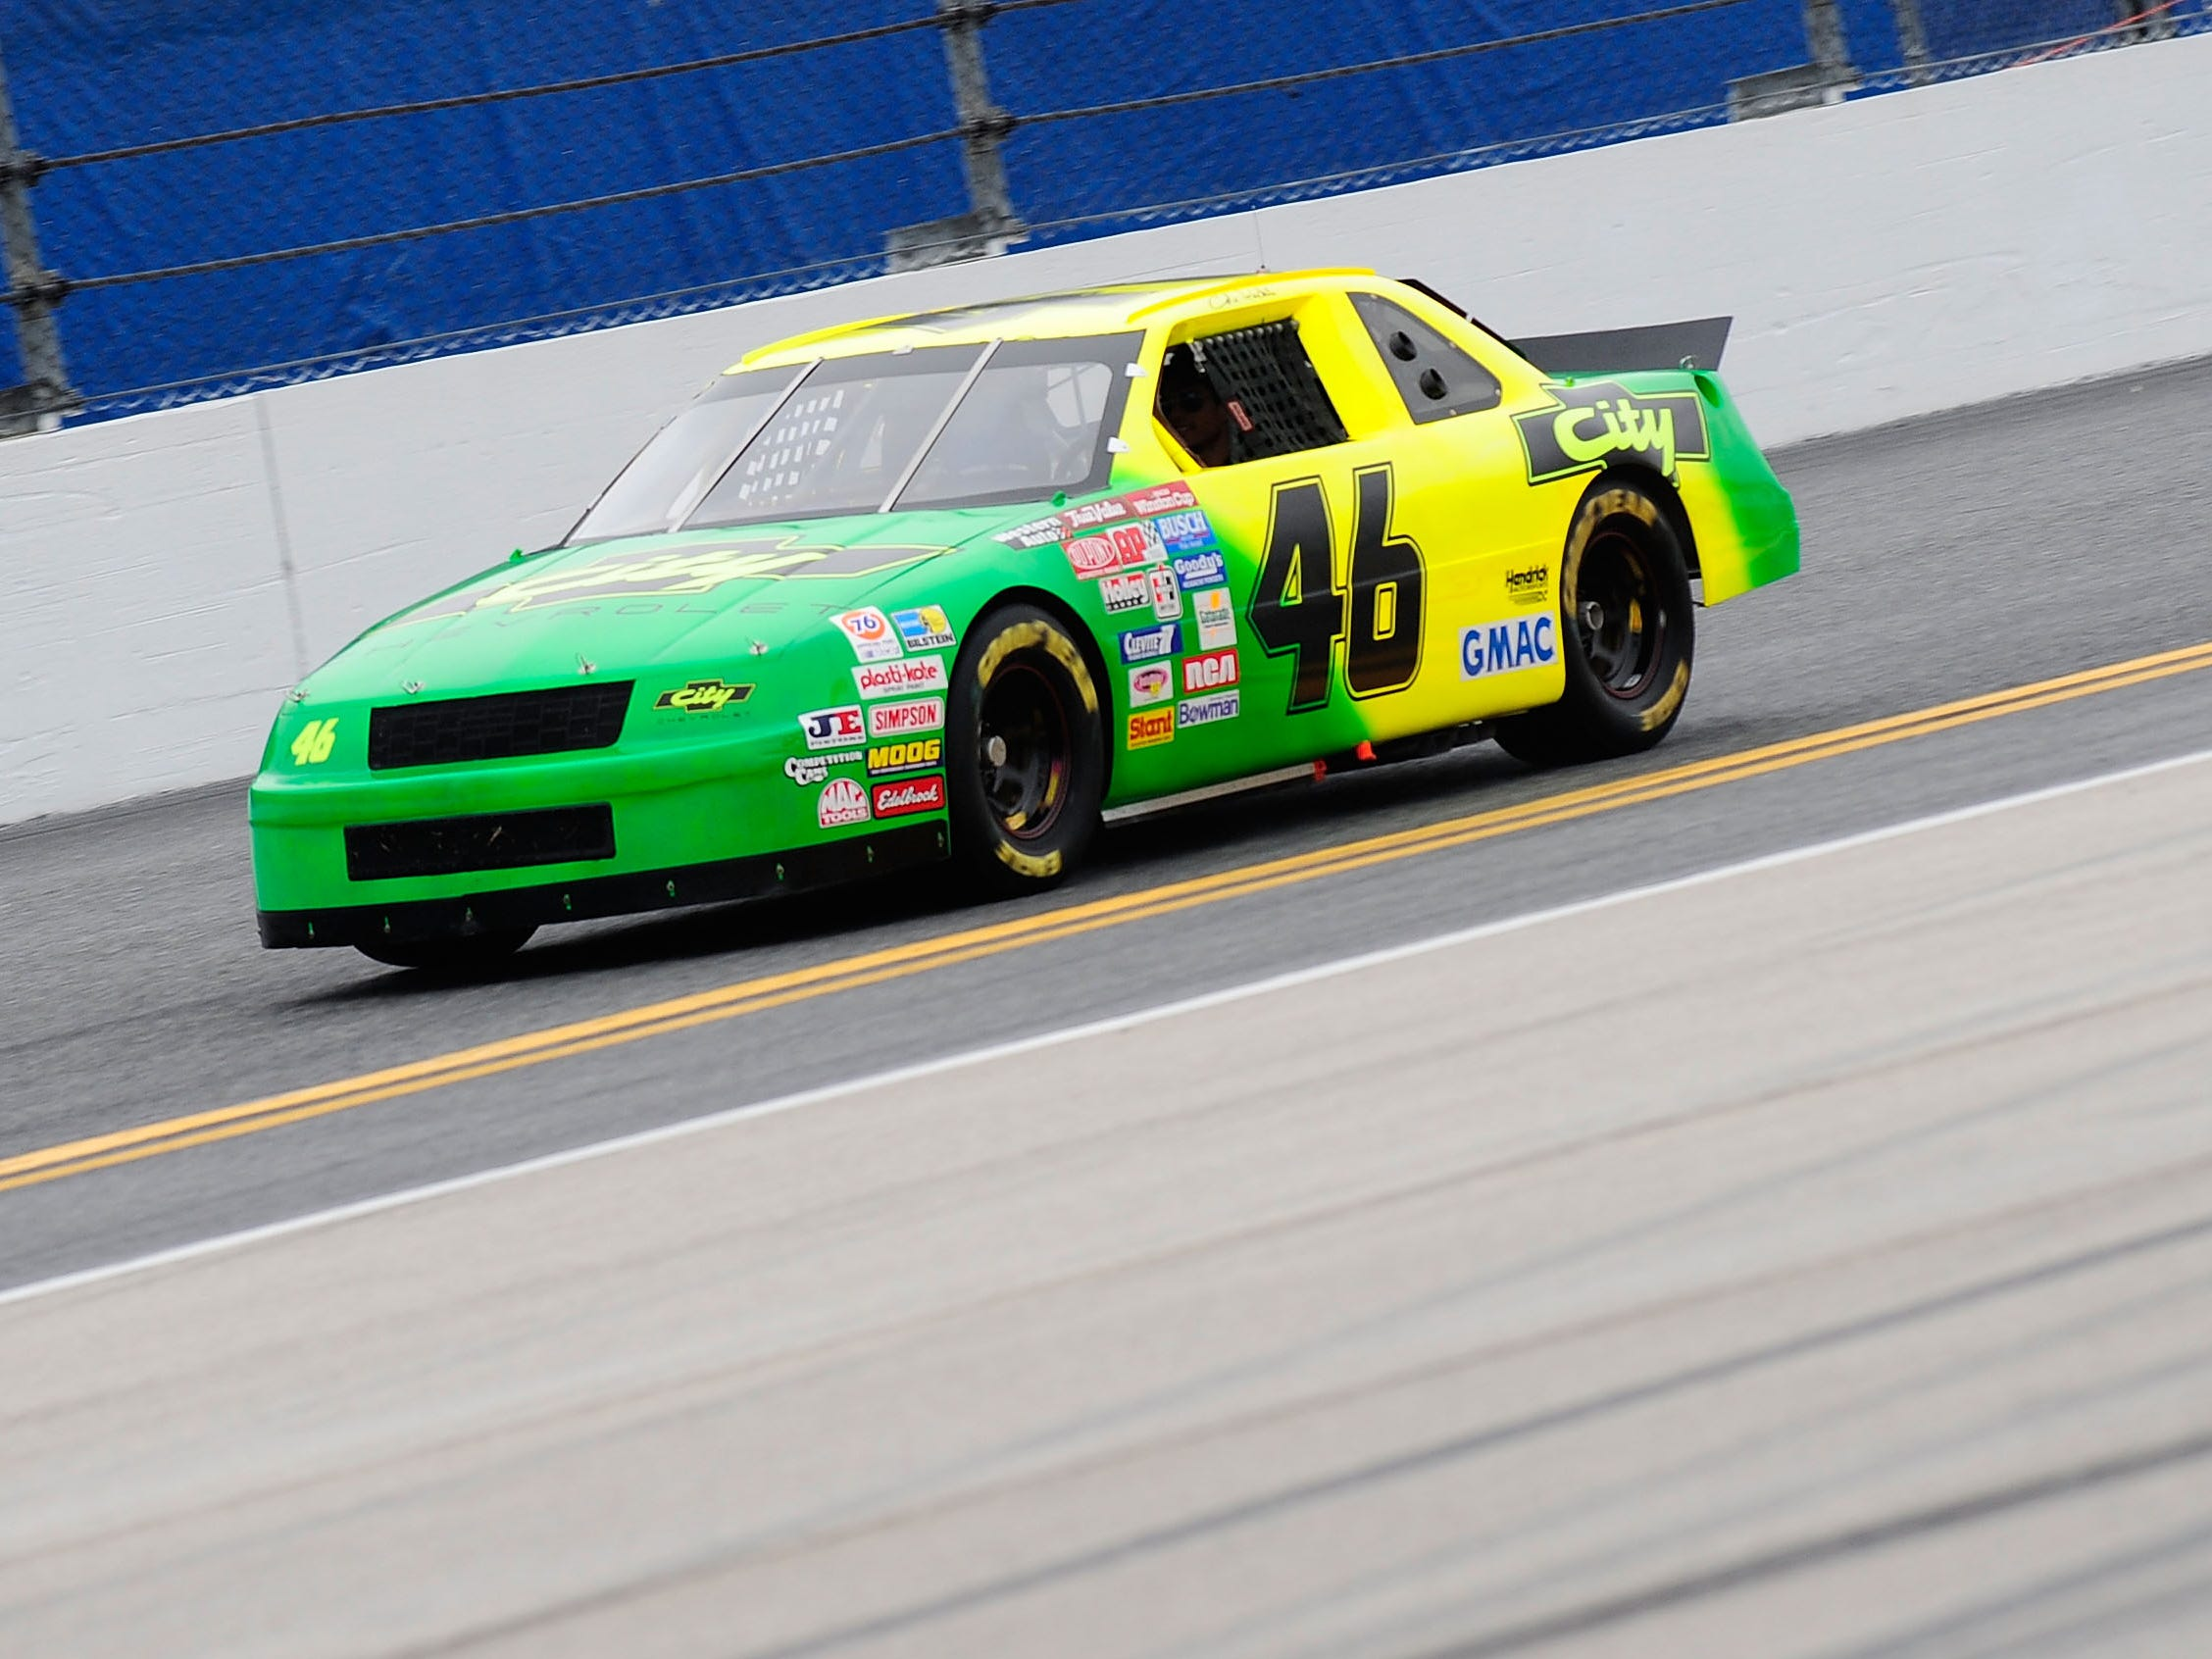 """DAYTONA BEACH, FL - FEBRUARY 15:  Actor Tom Cruise drives the car used in the film """"Days of Thunder"""" on track prior to the NASCAR Sprint Cup Series Daytona 500 at Daytona International Speedway on February 15, 2009 in Daytona Beach, Florida.  (Photo by Rusty Jarrett/Getty Images for NASCAR)"""